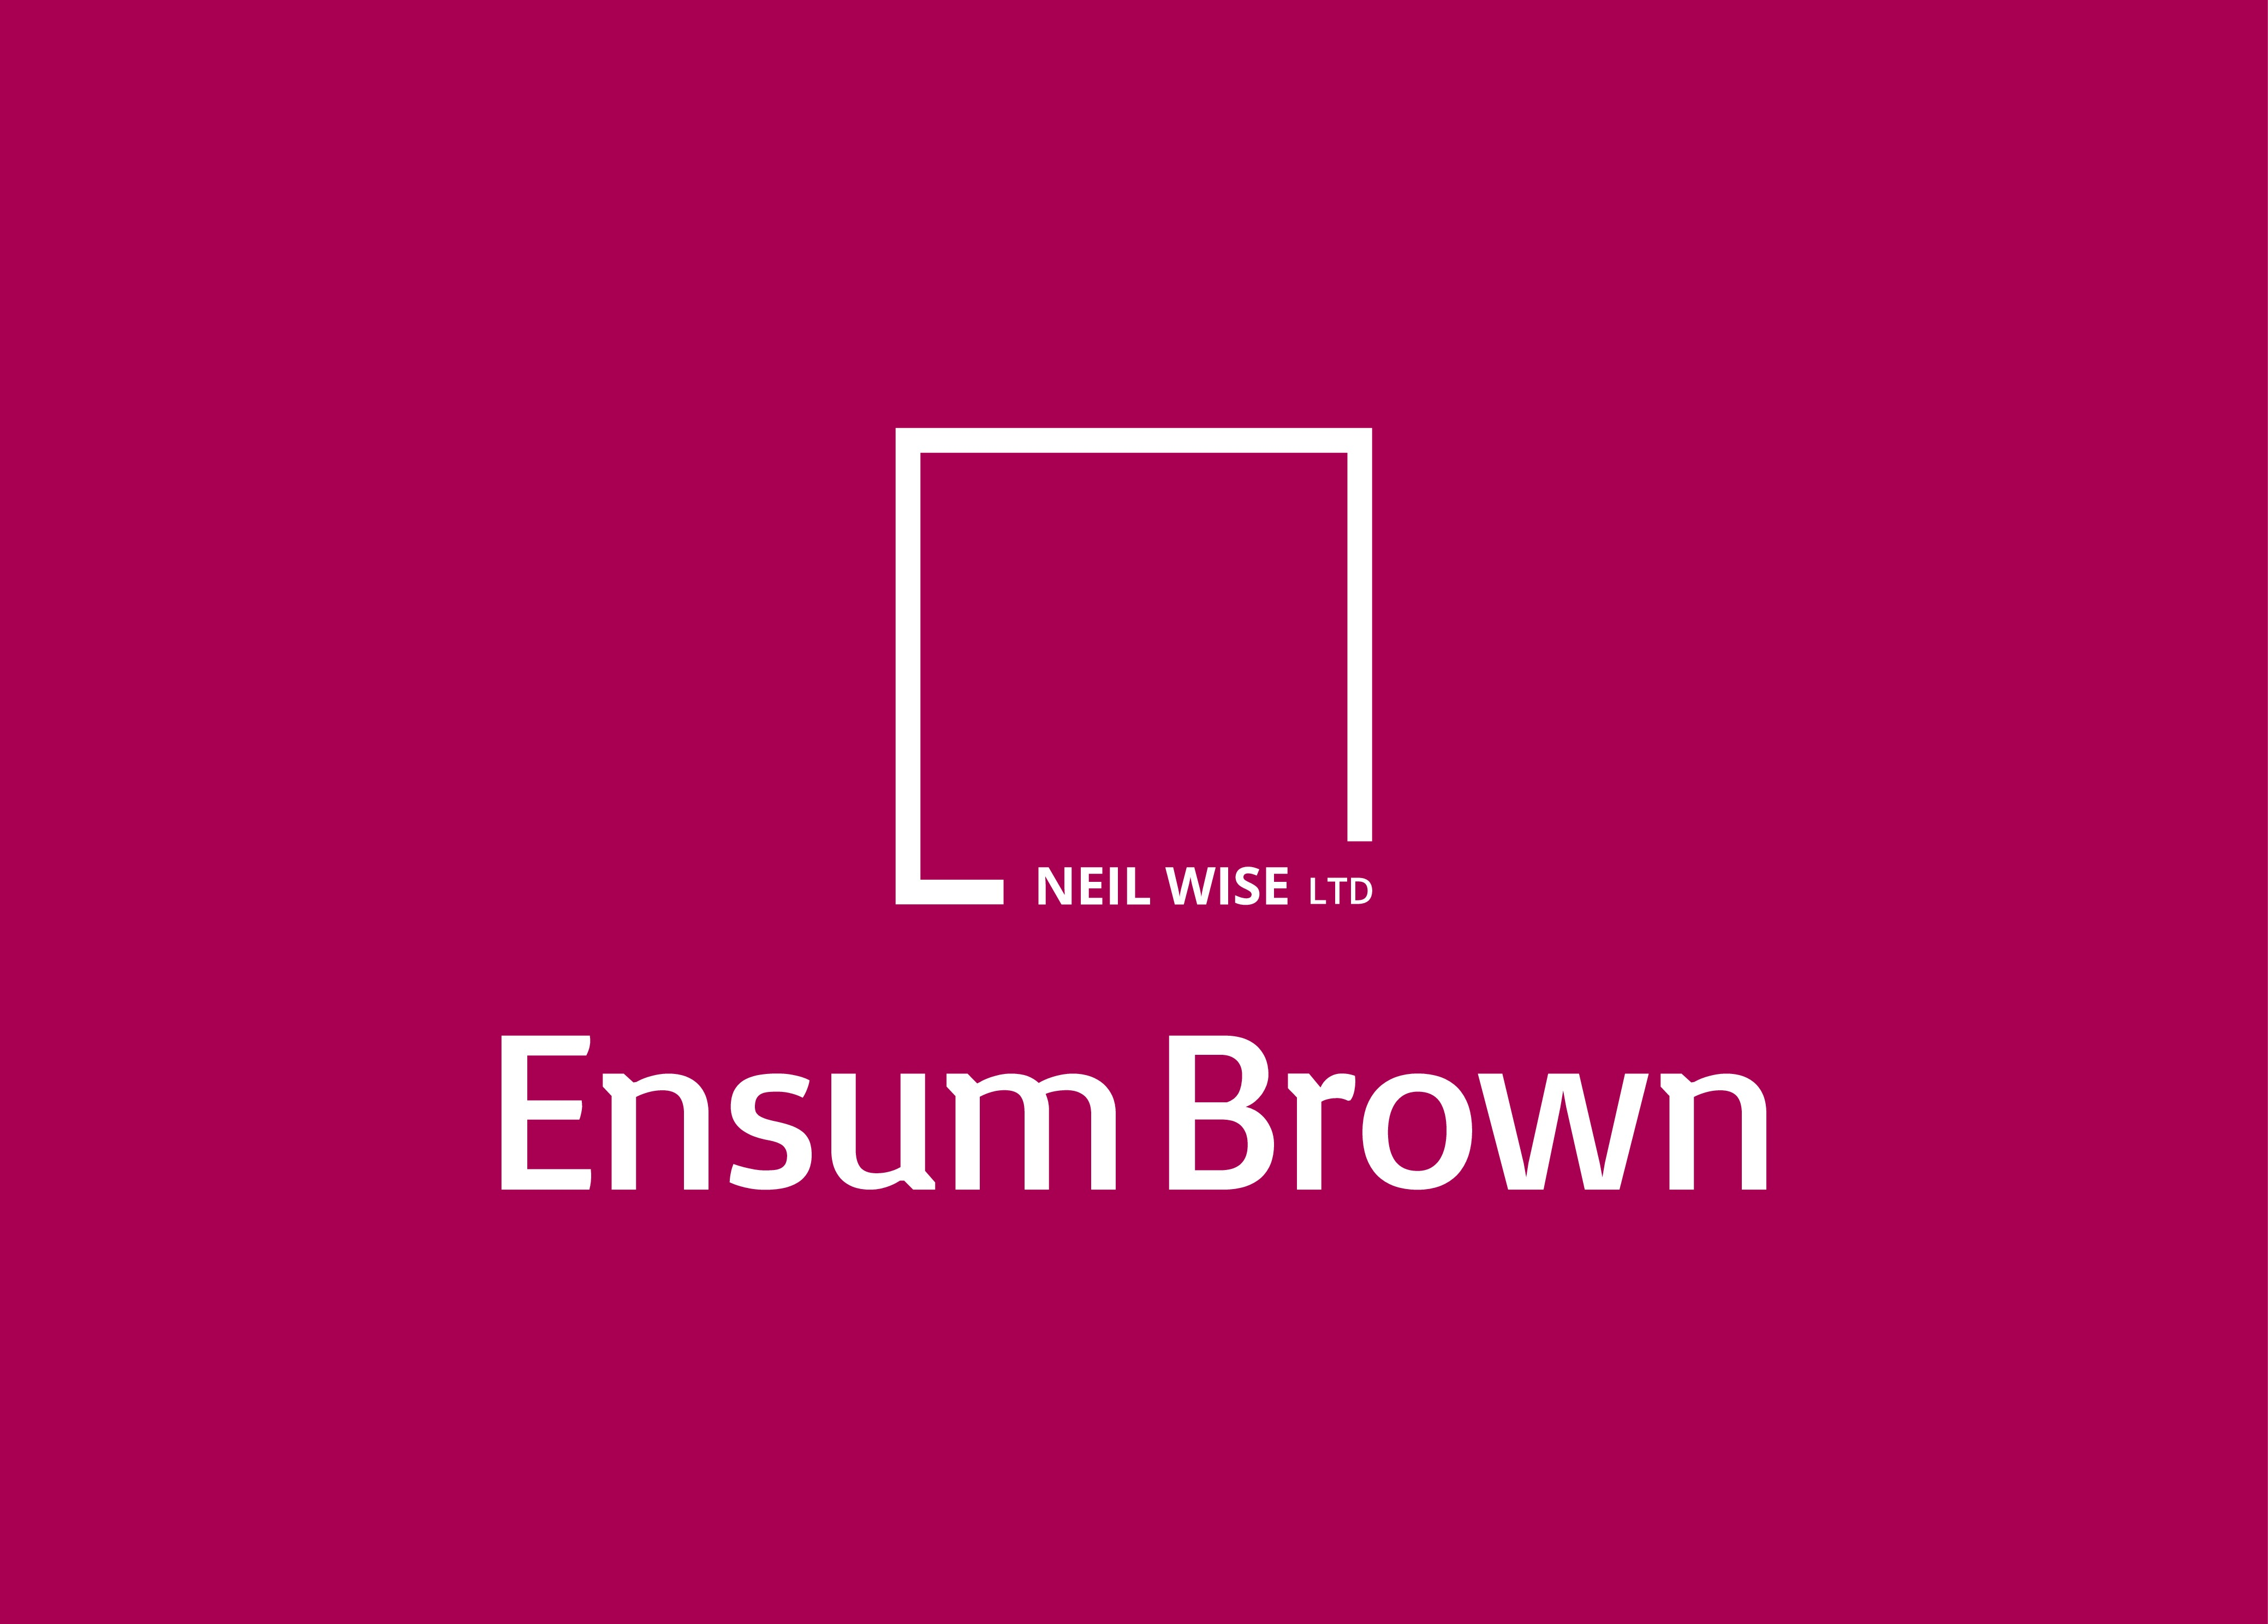 Ensum Brown